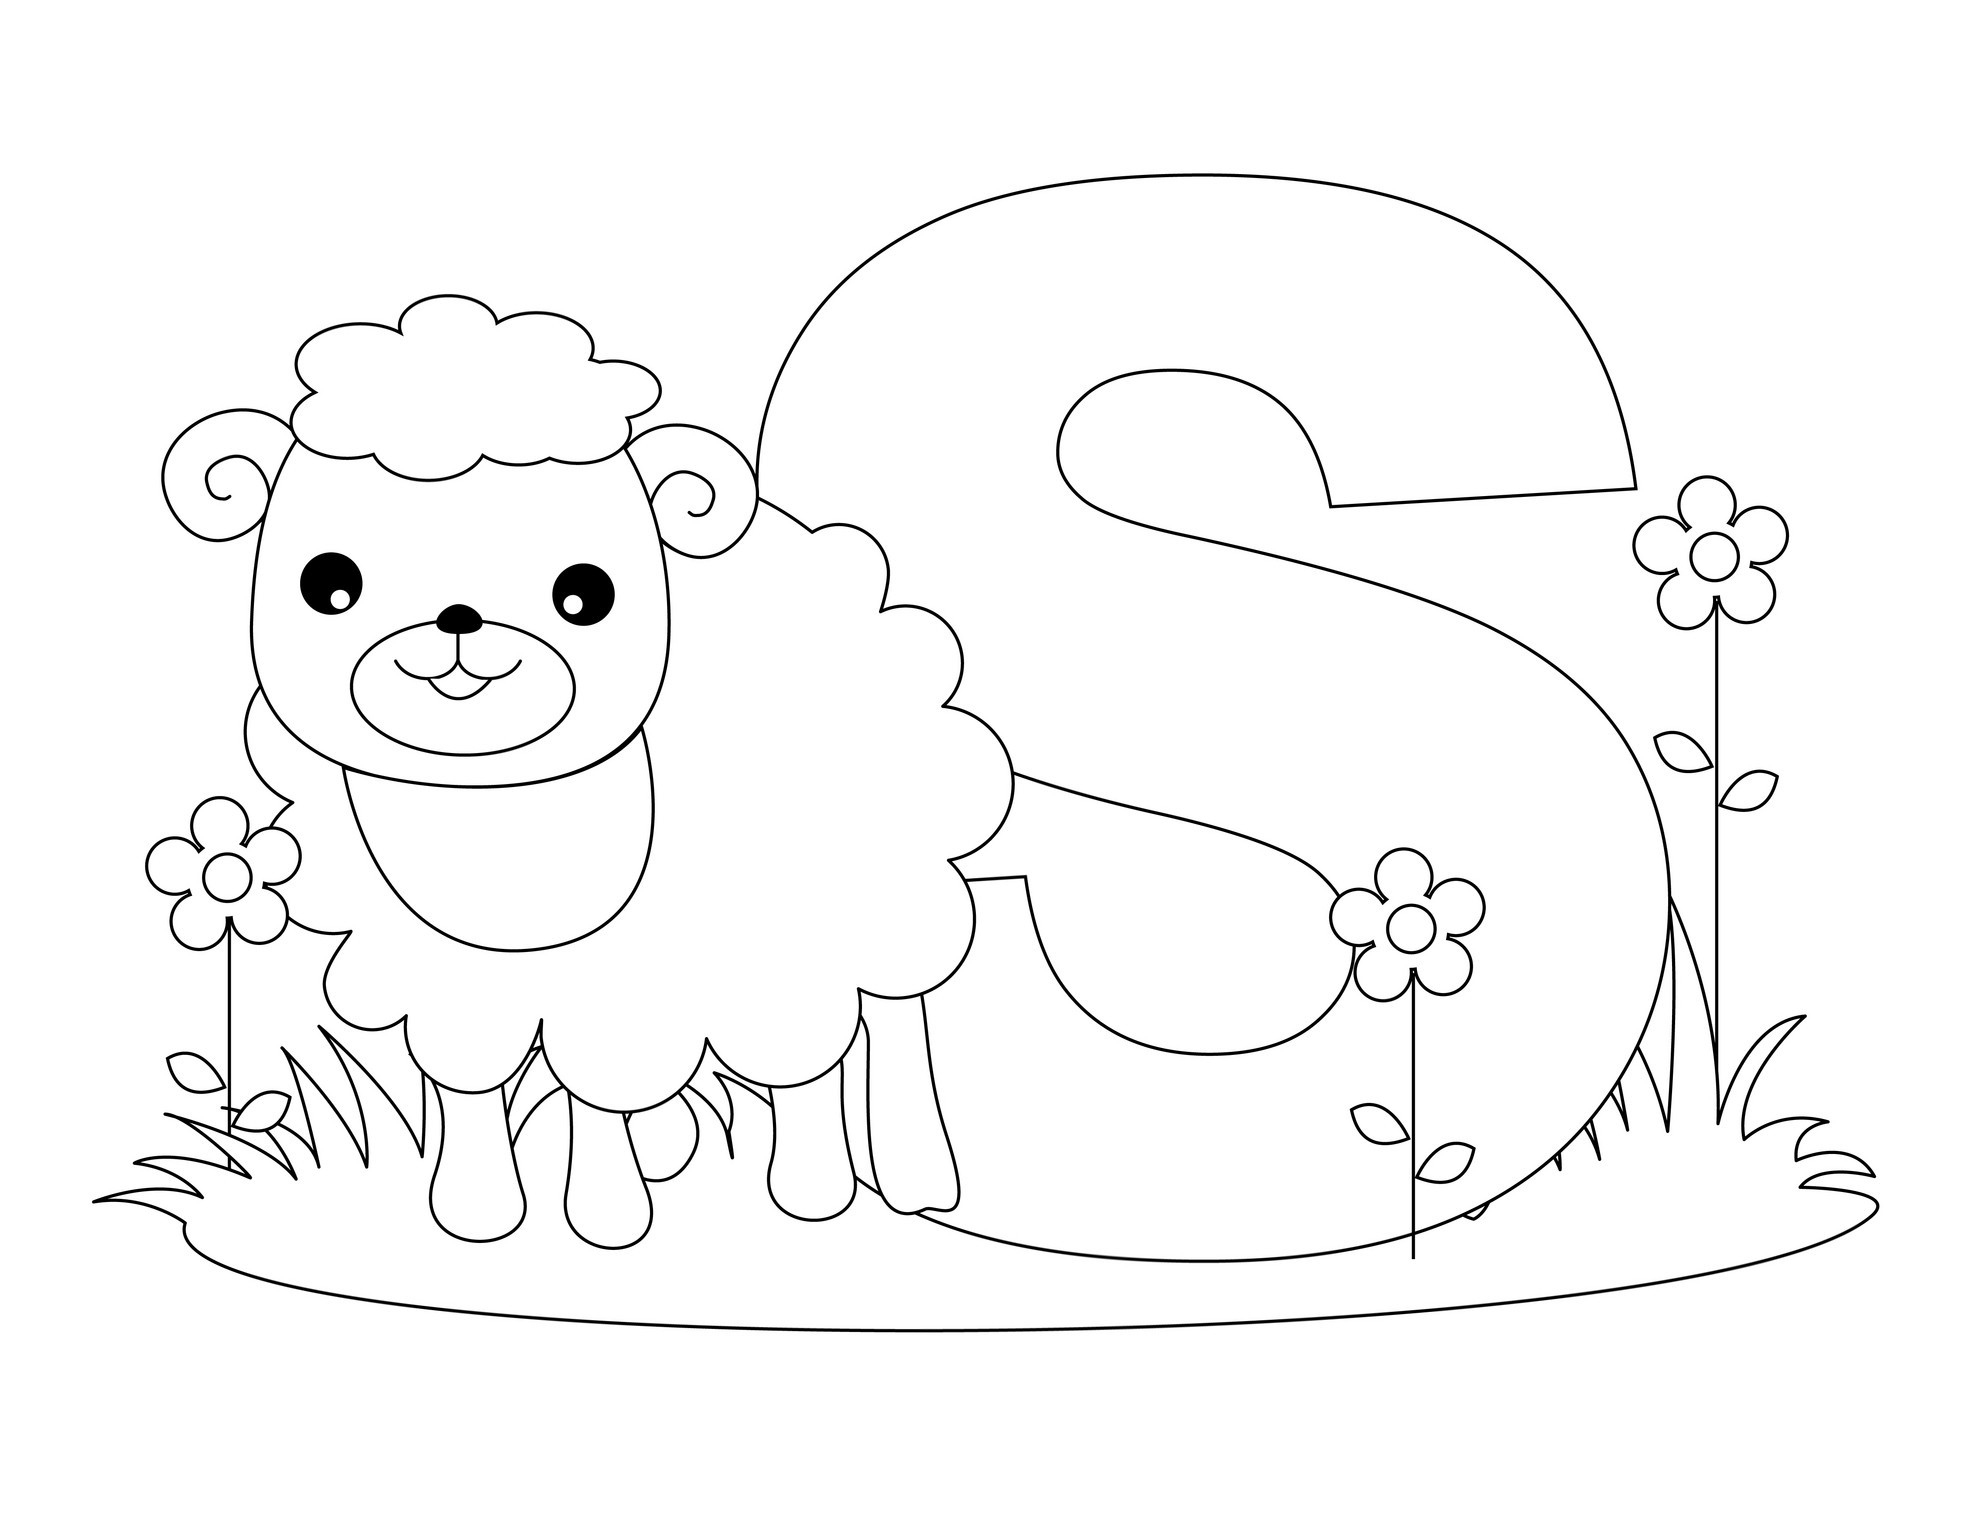 Coloring Pages For Alphabet : Free printable alphabet coloring pages for kids best